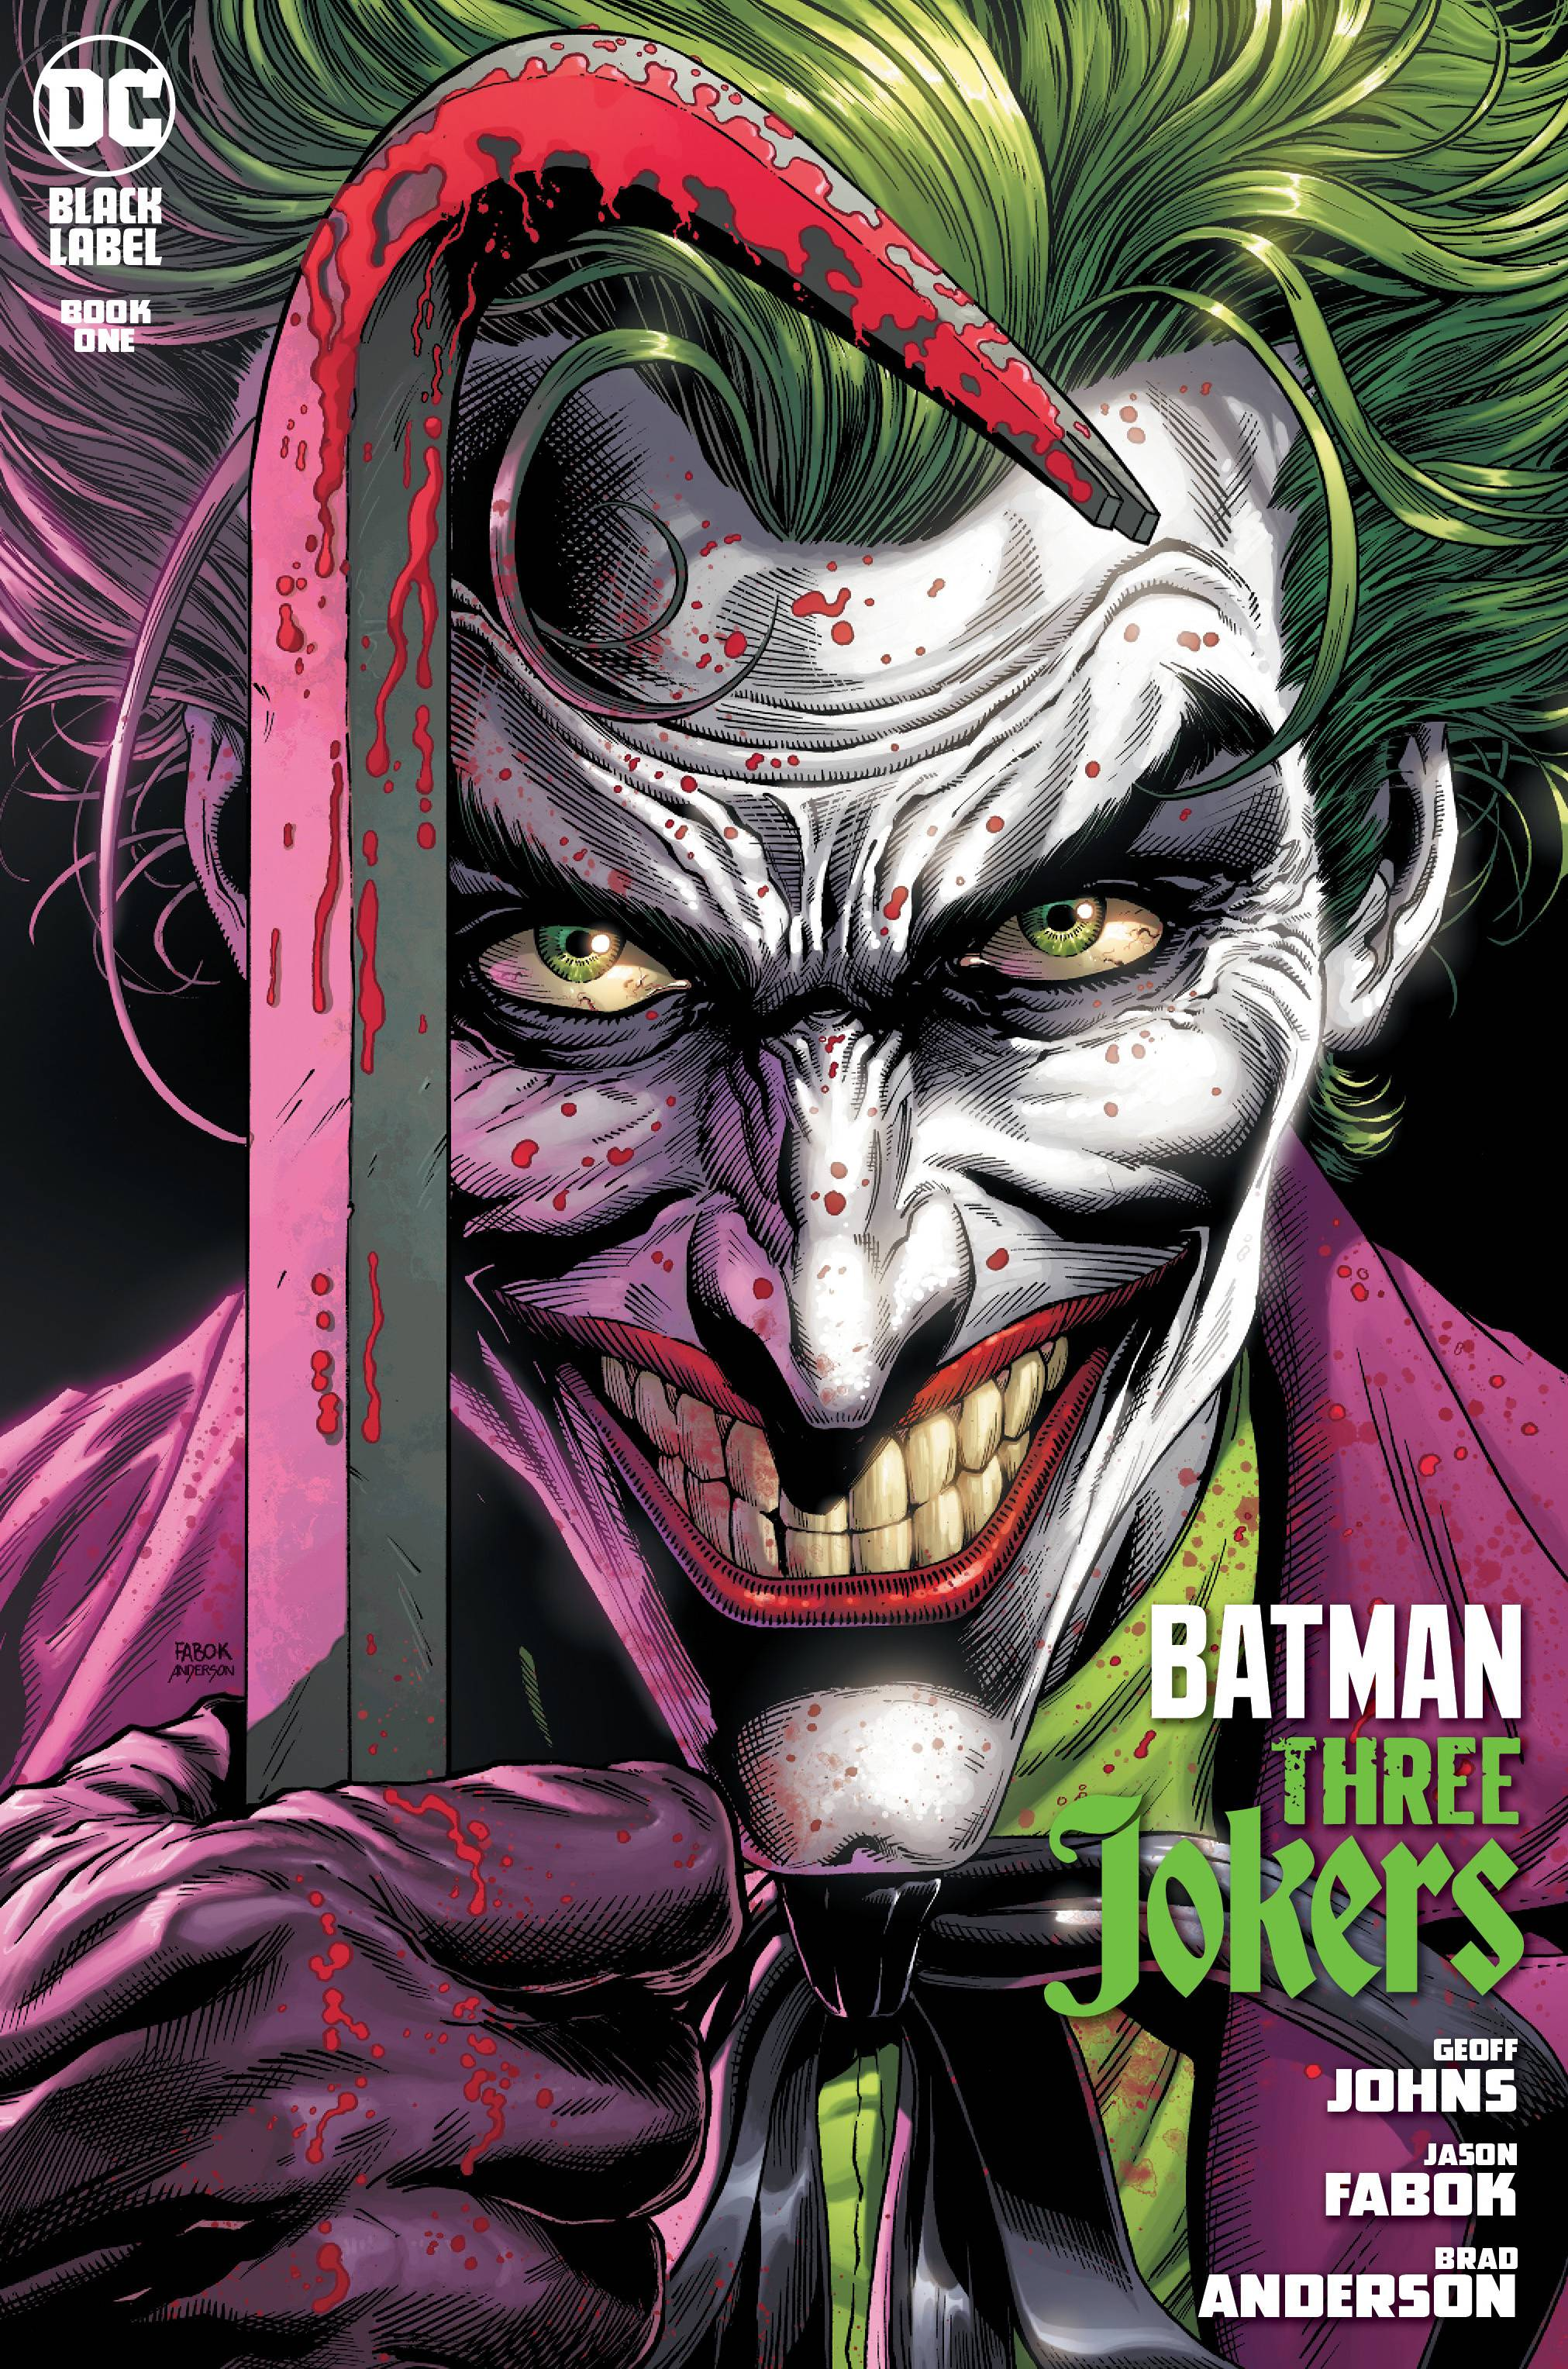 BATMAN THREE JOKERS #1 (OF 3) (RES)